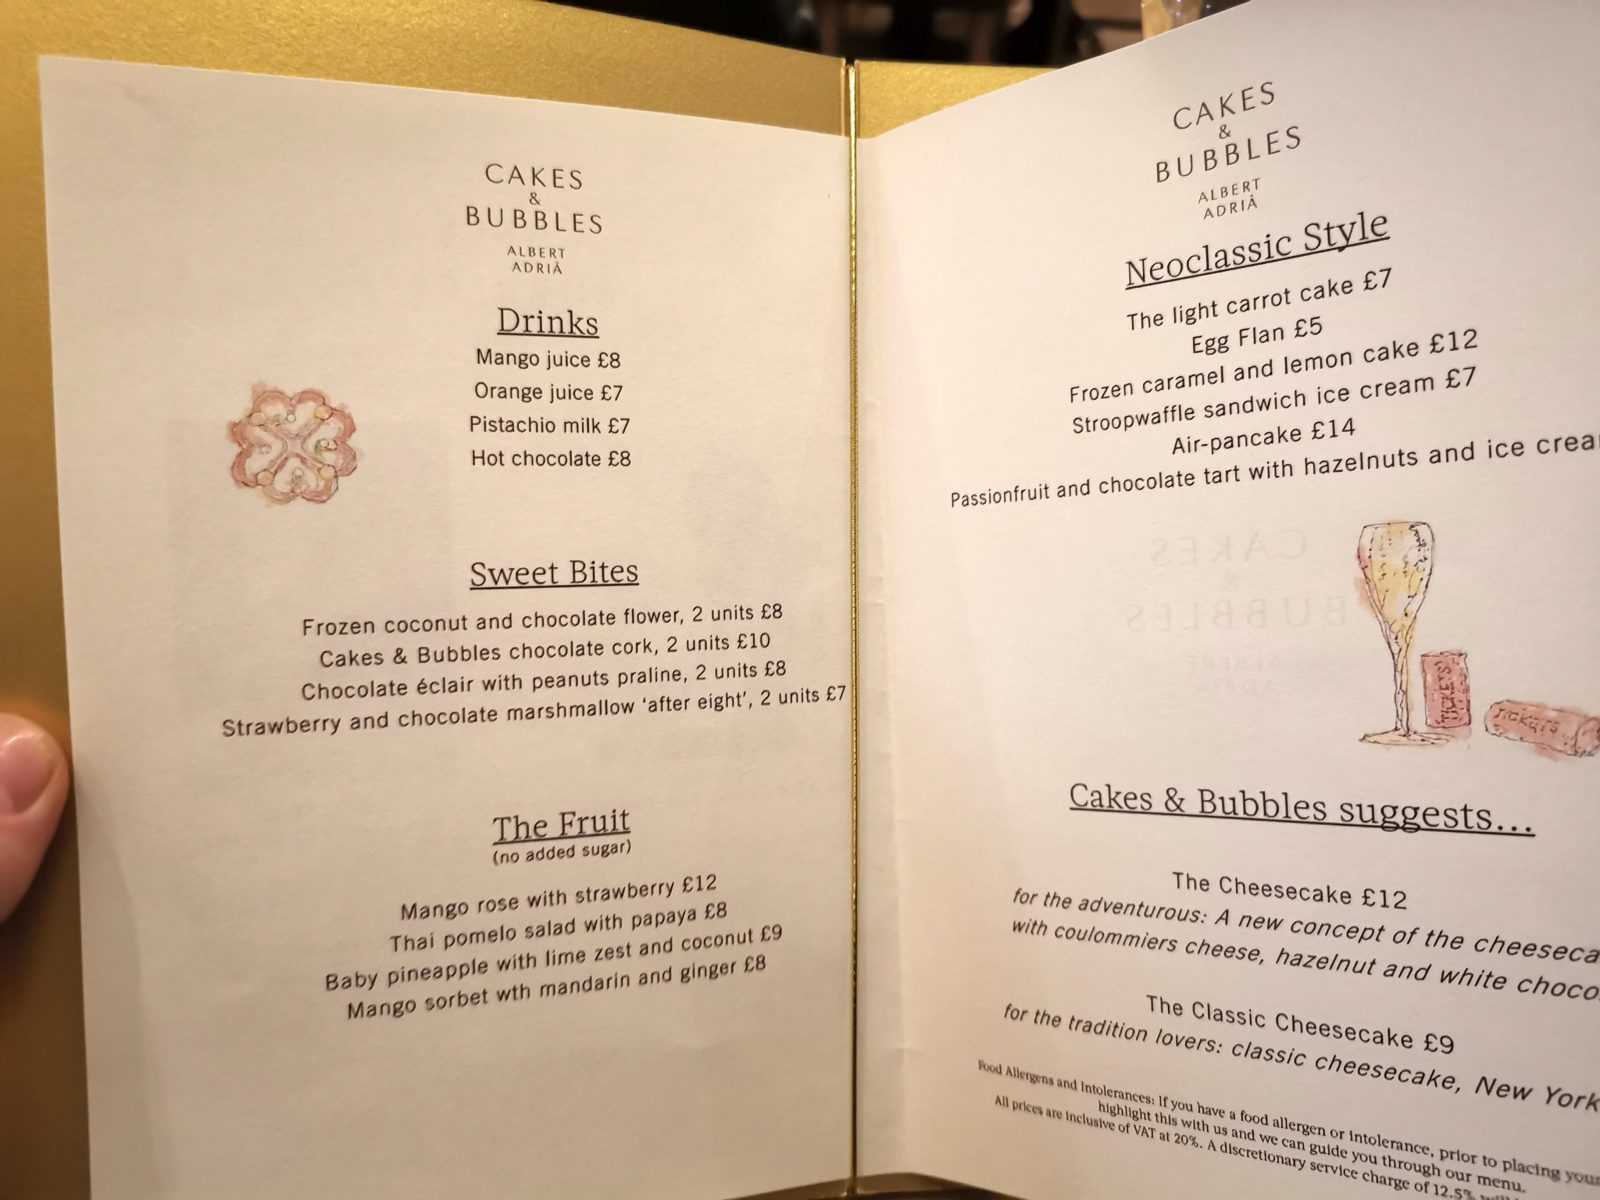 Albert Adria's Dessert Menu at Cakes and Bubbles - London